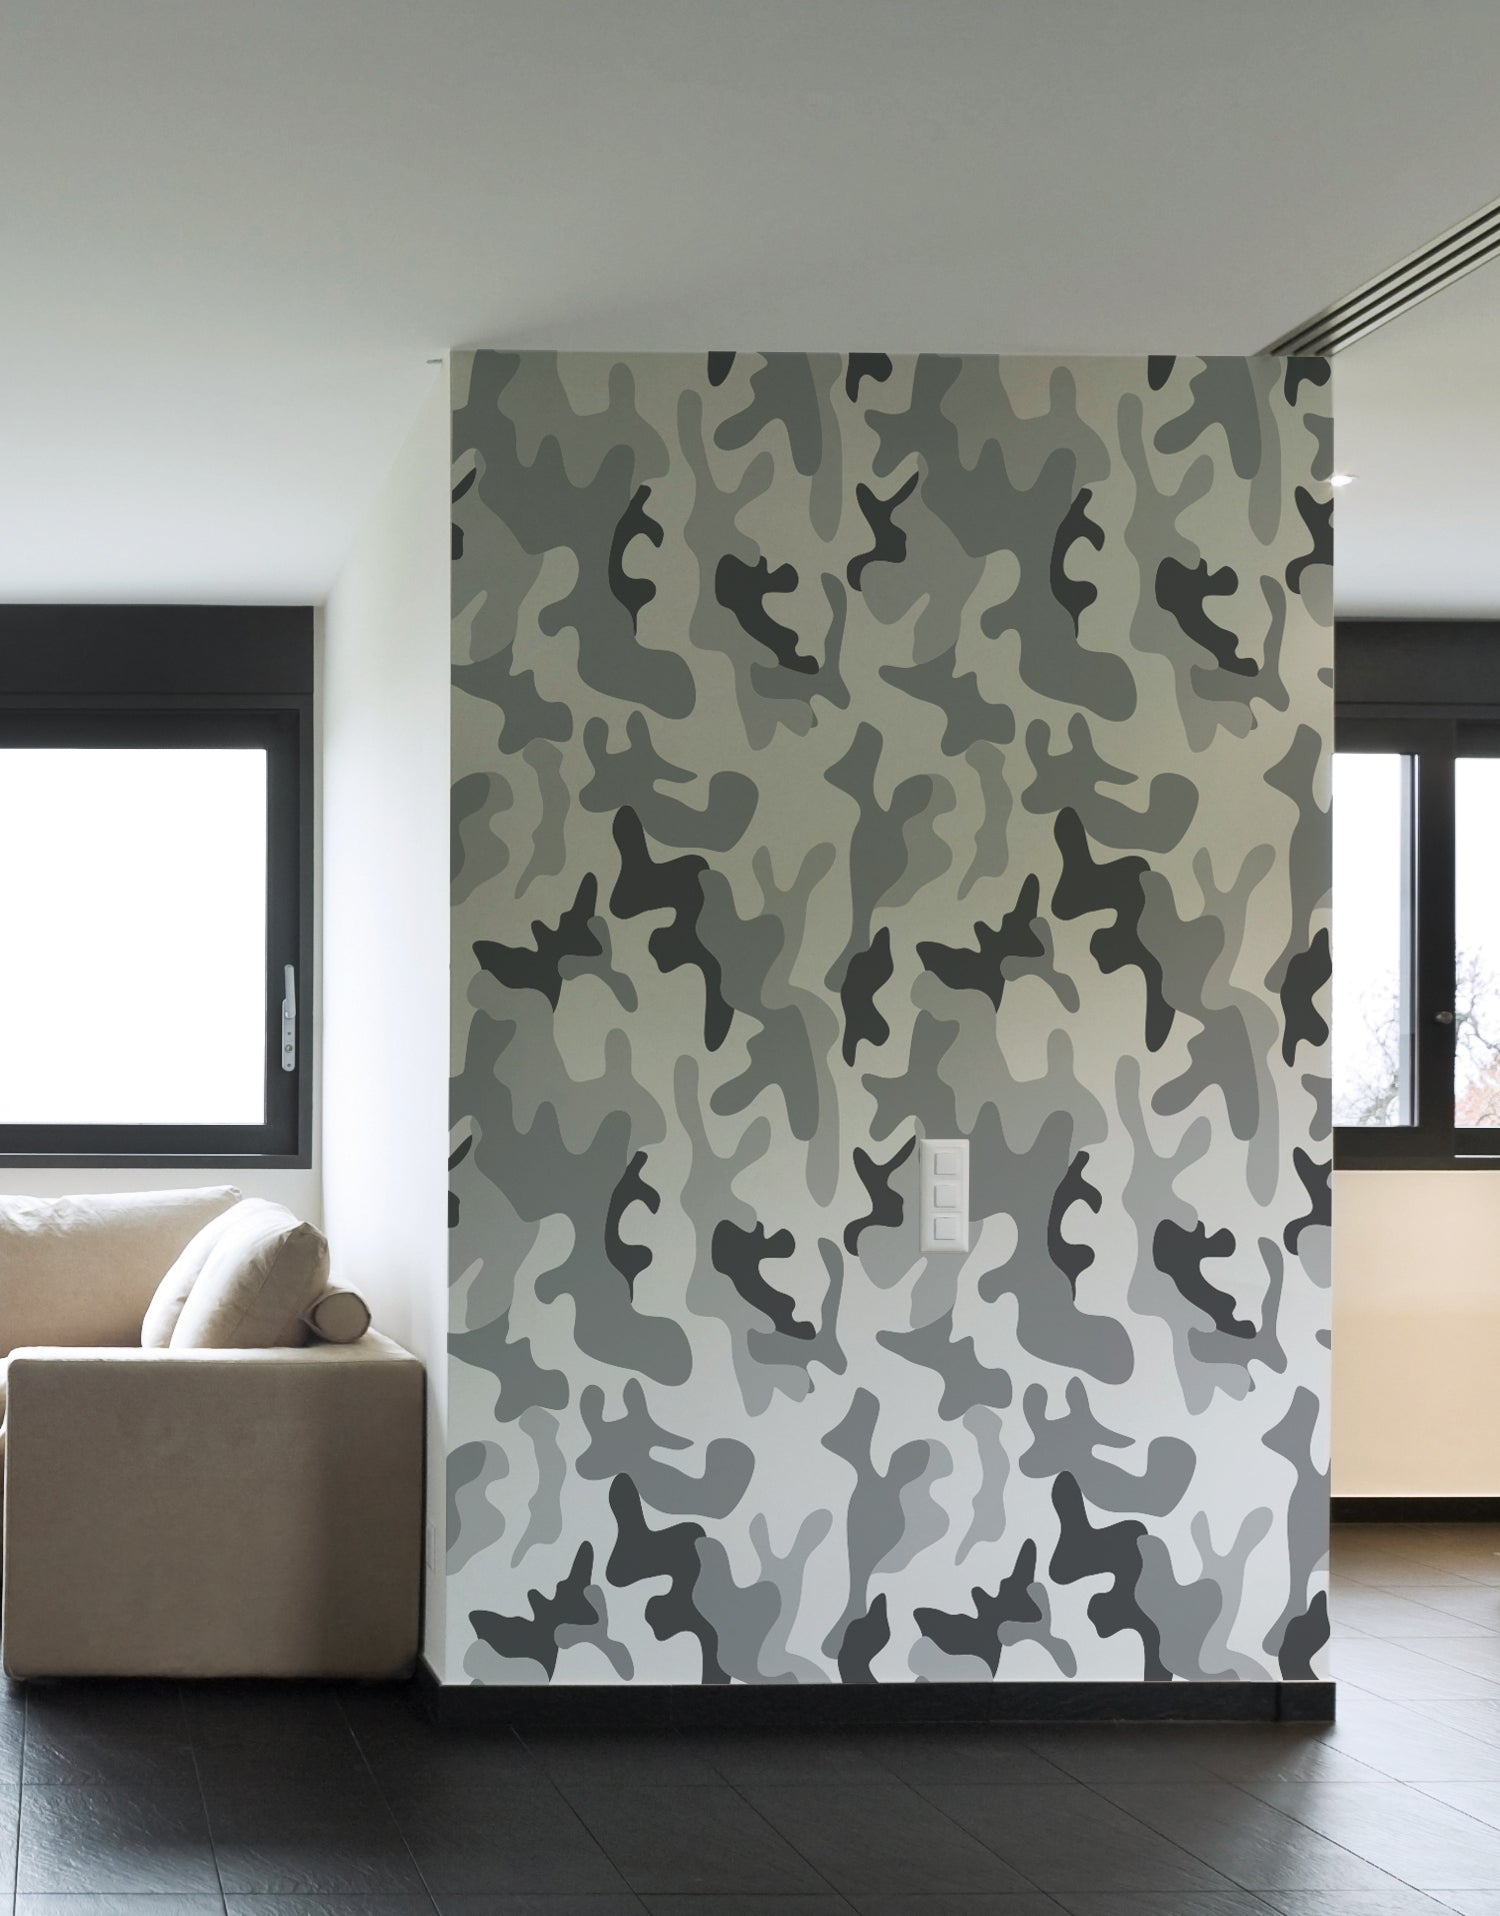 Urban Gray Military Combat Camo Camouflage Wall Mural #6063